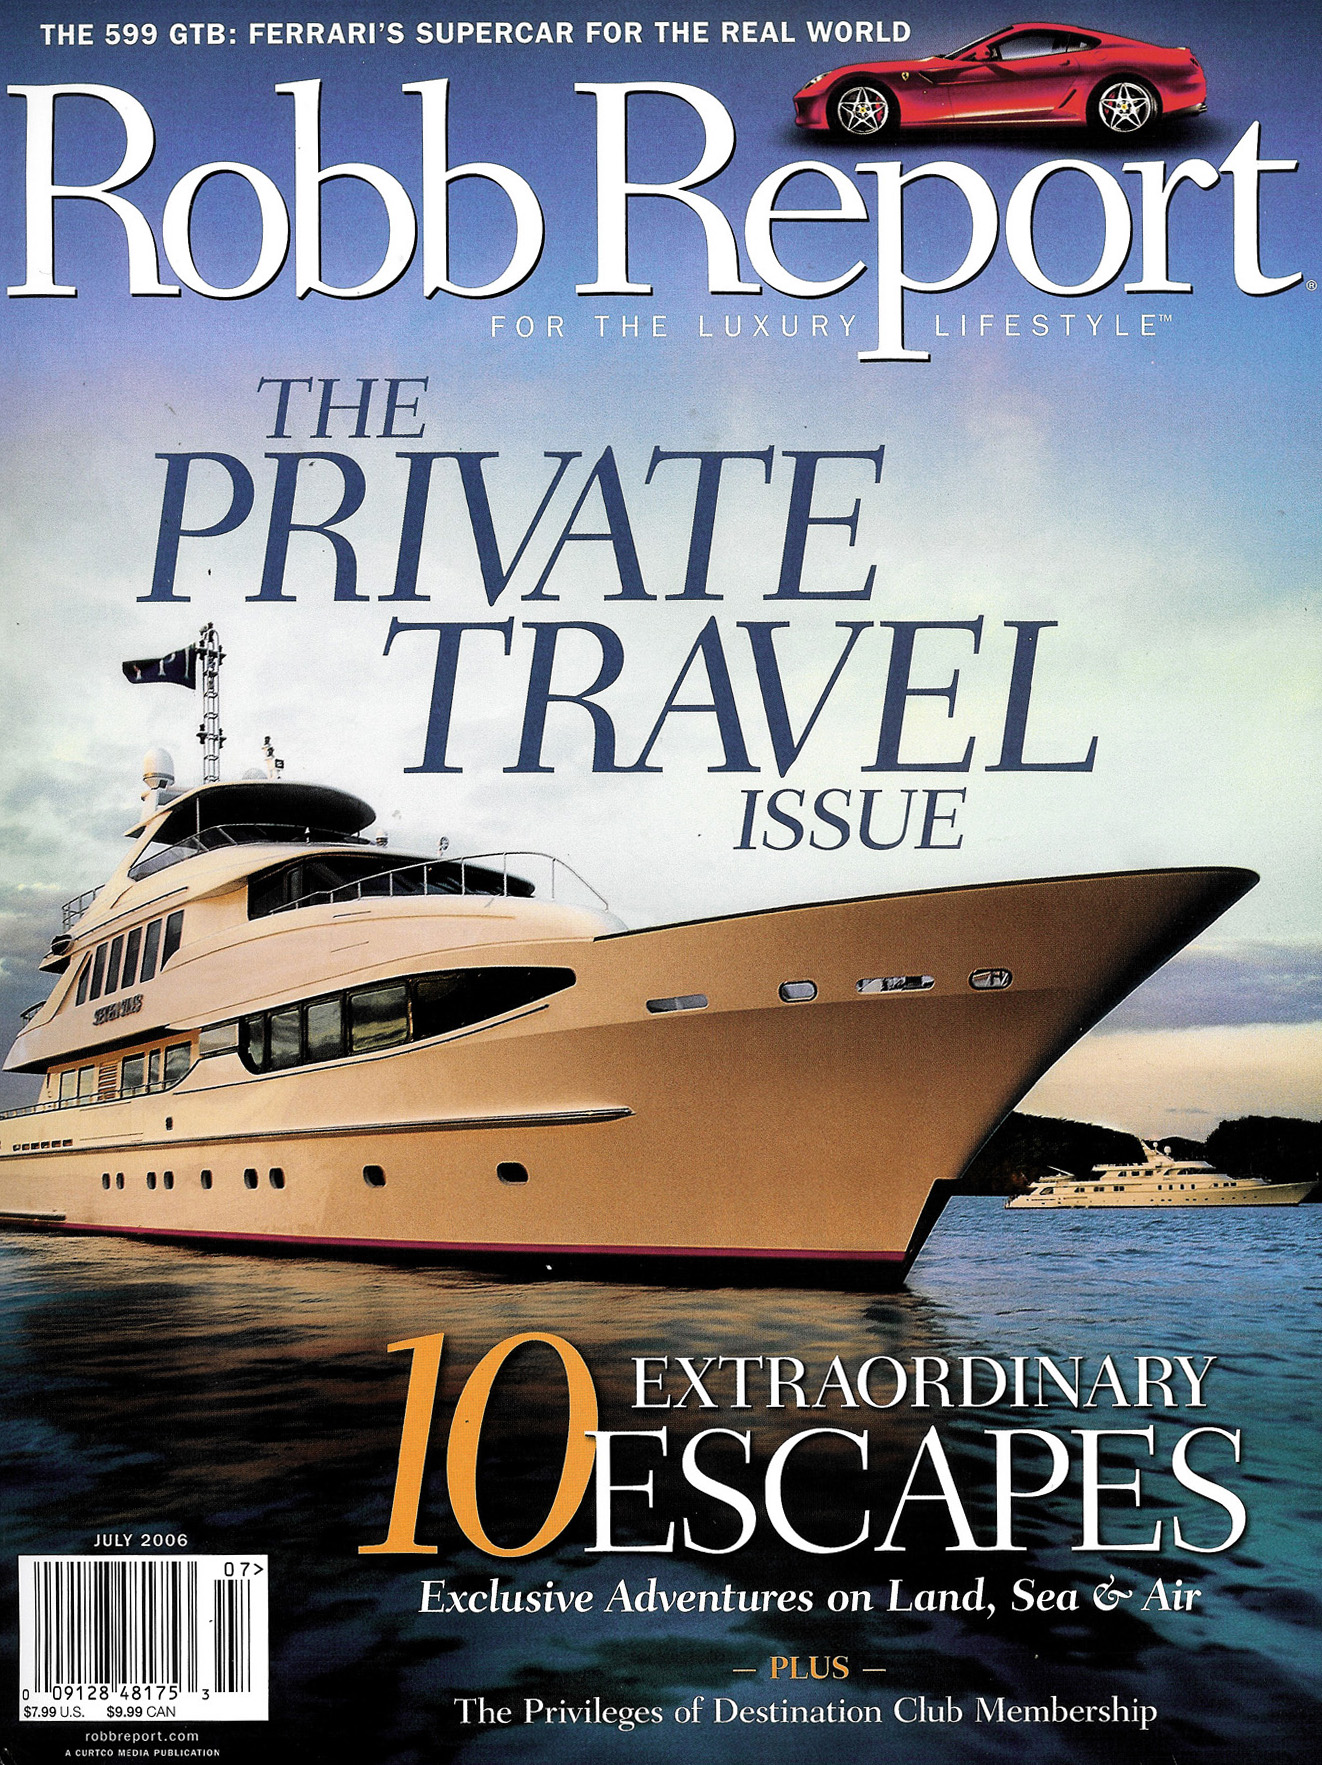 Robb Report Cover July 2006.jpg